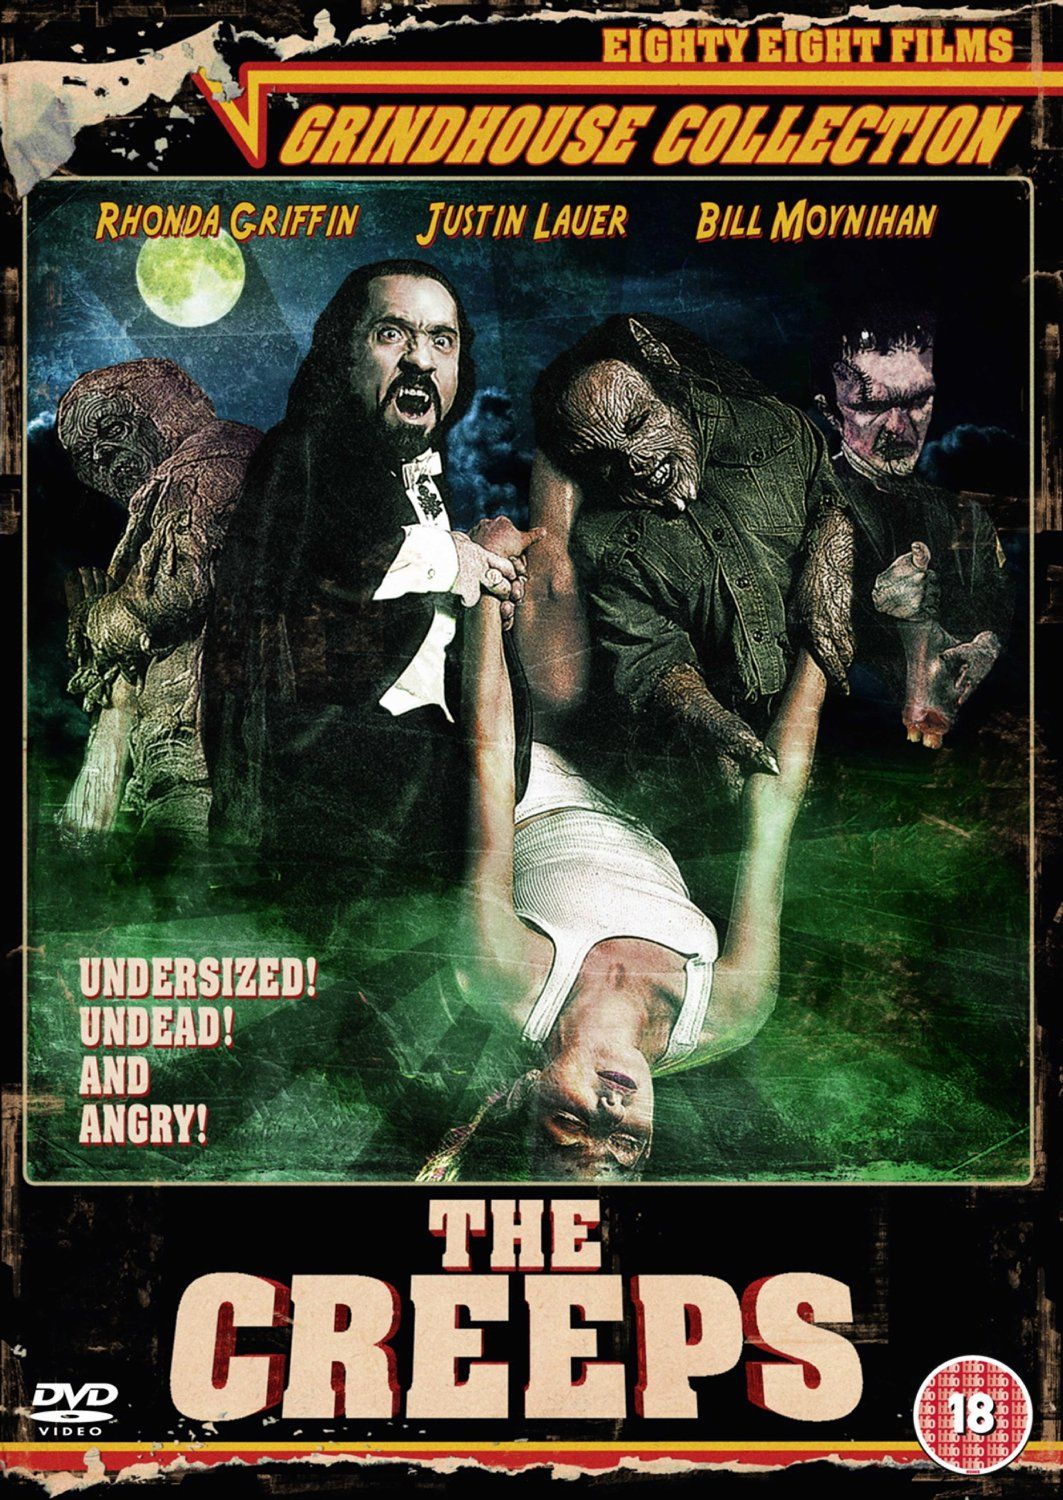 The Creeps (1997) Grindhouse, Horror, Comedy